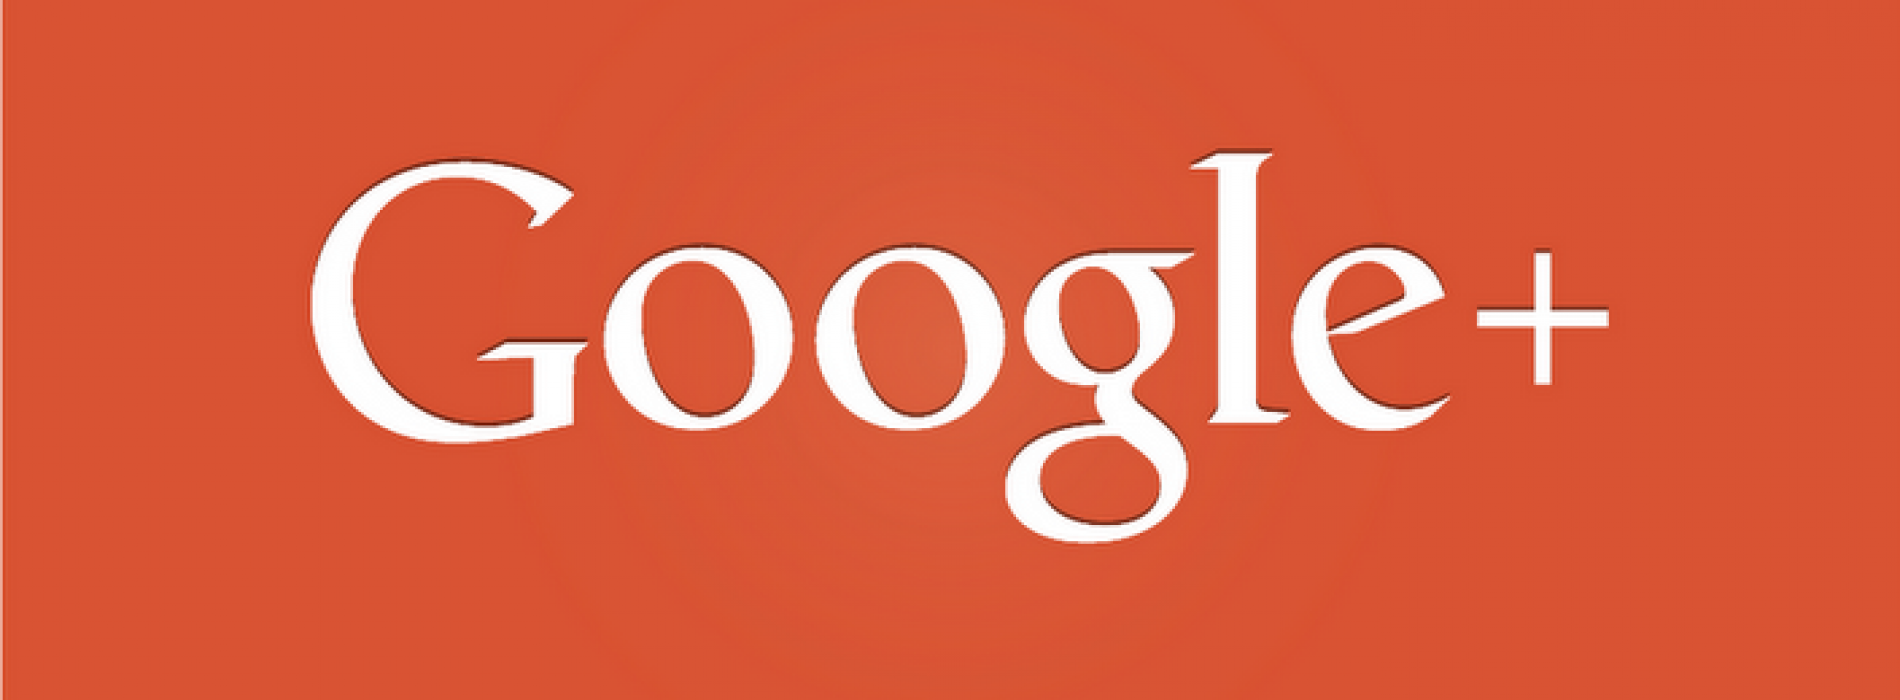 Google+ app gets much-requested Page support